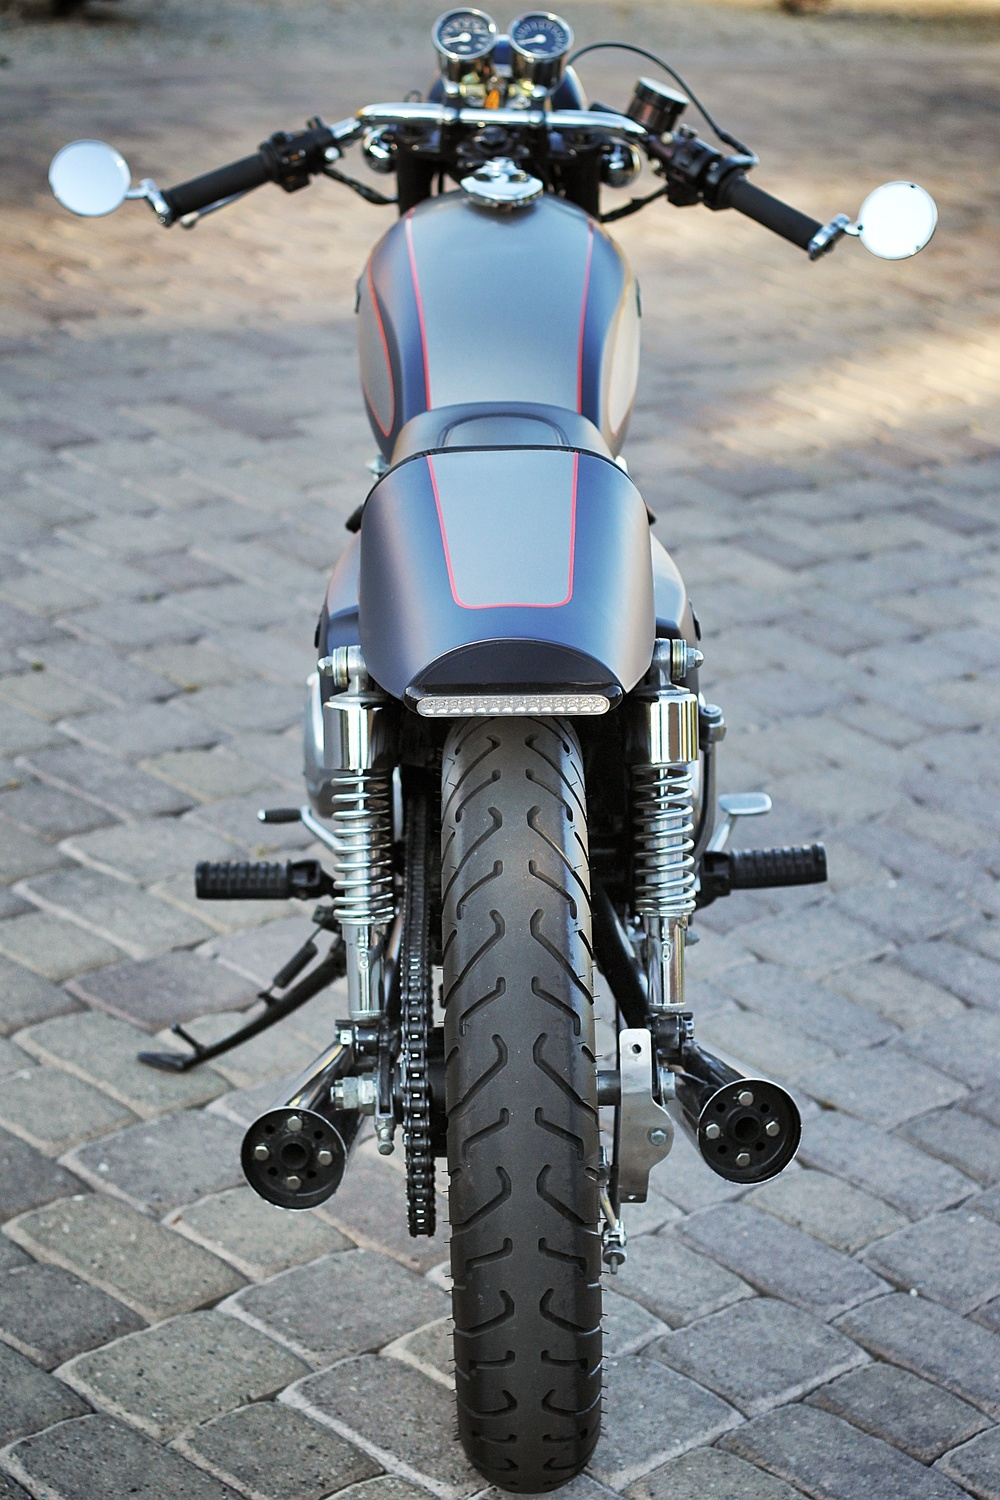 shiftcraft_kz400_rear.jpg